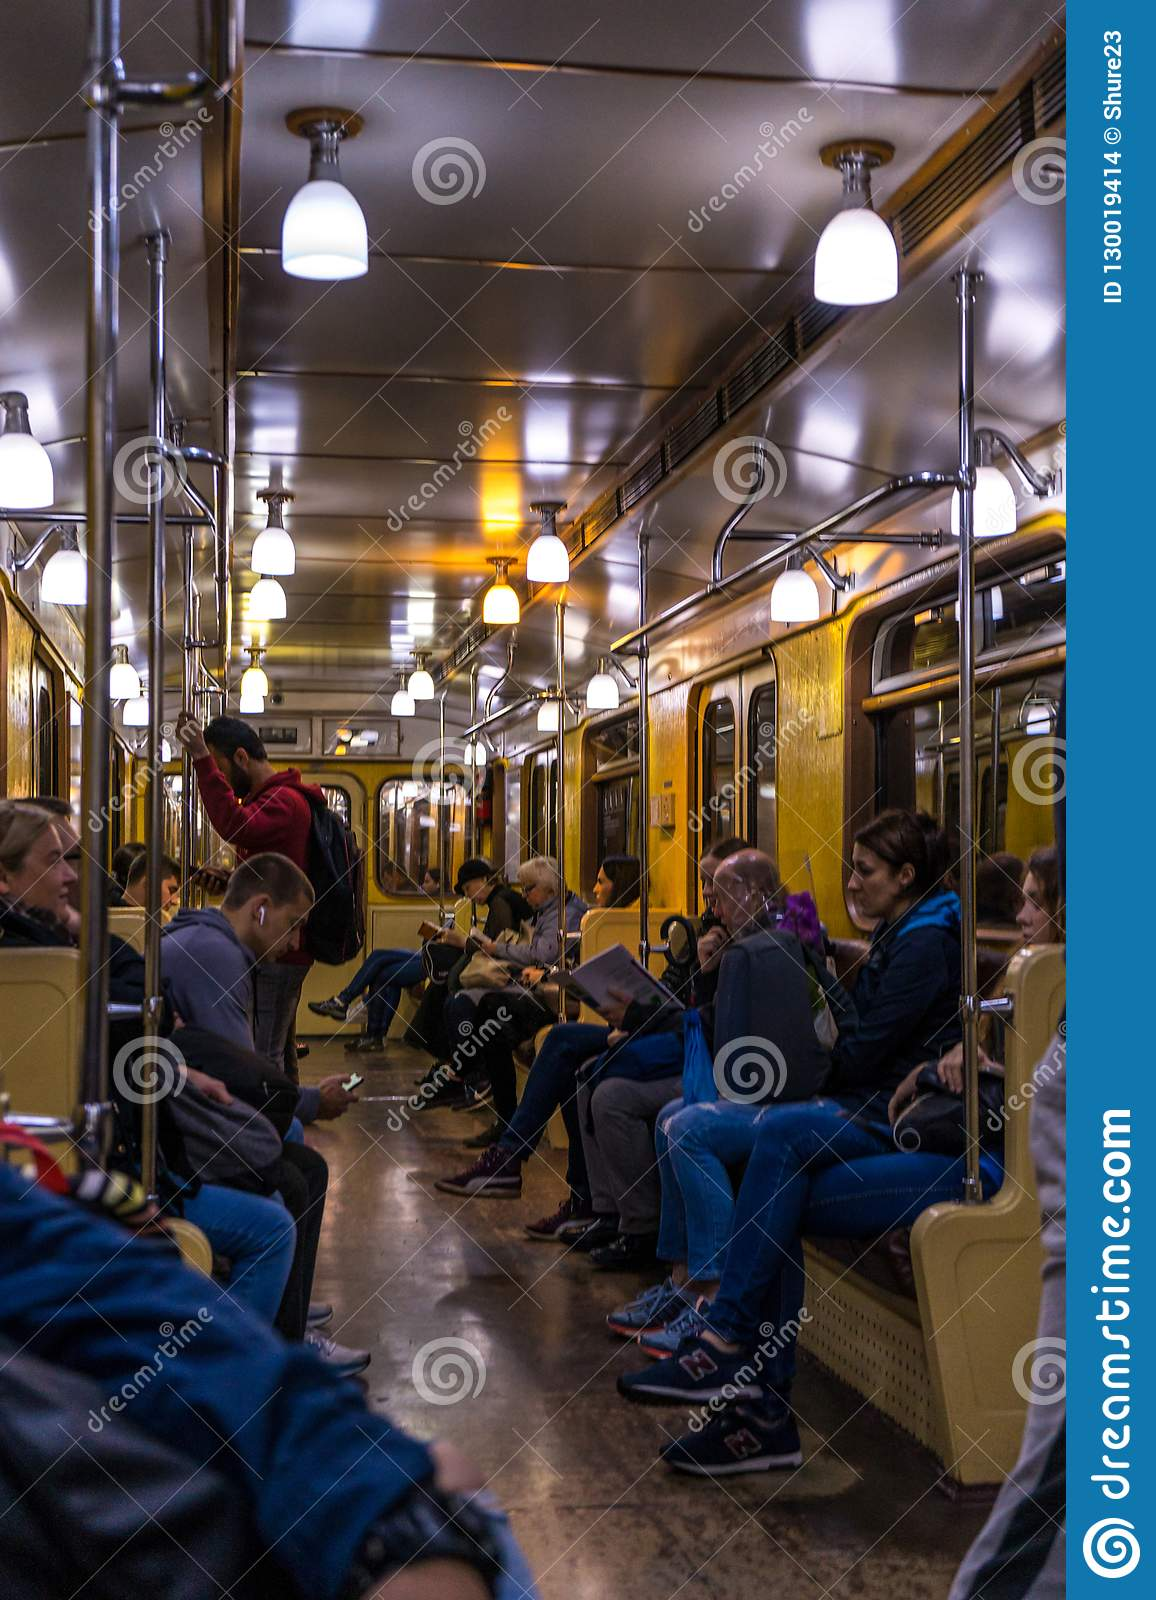 Vintage metro wagon in service on an ordinary metro line in Russian capital city metro